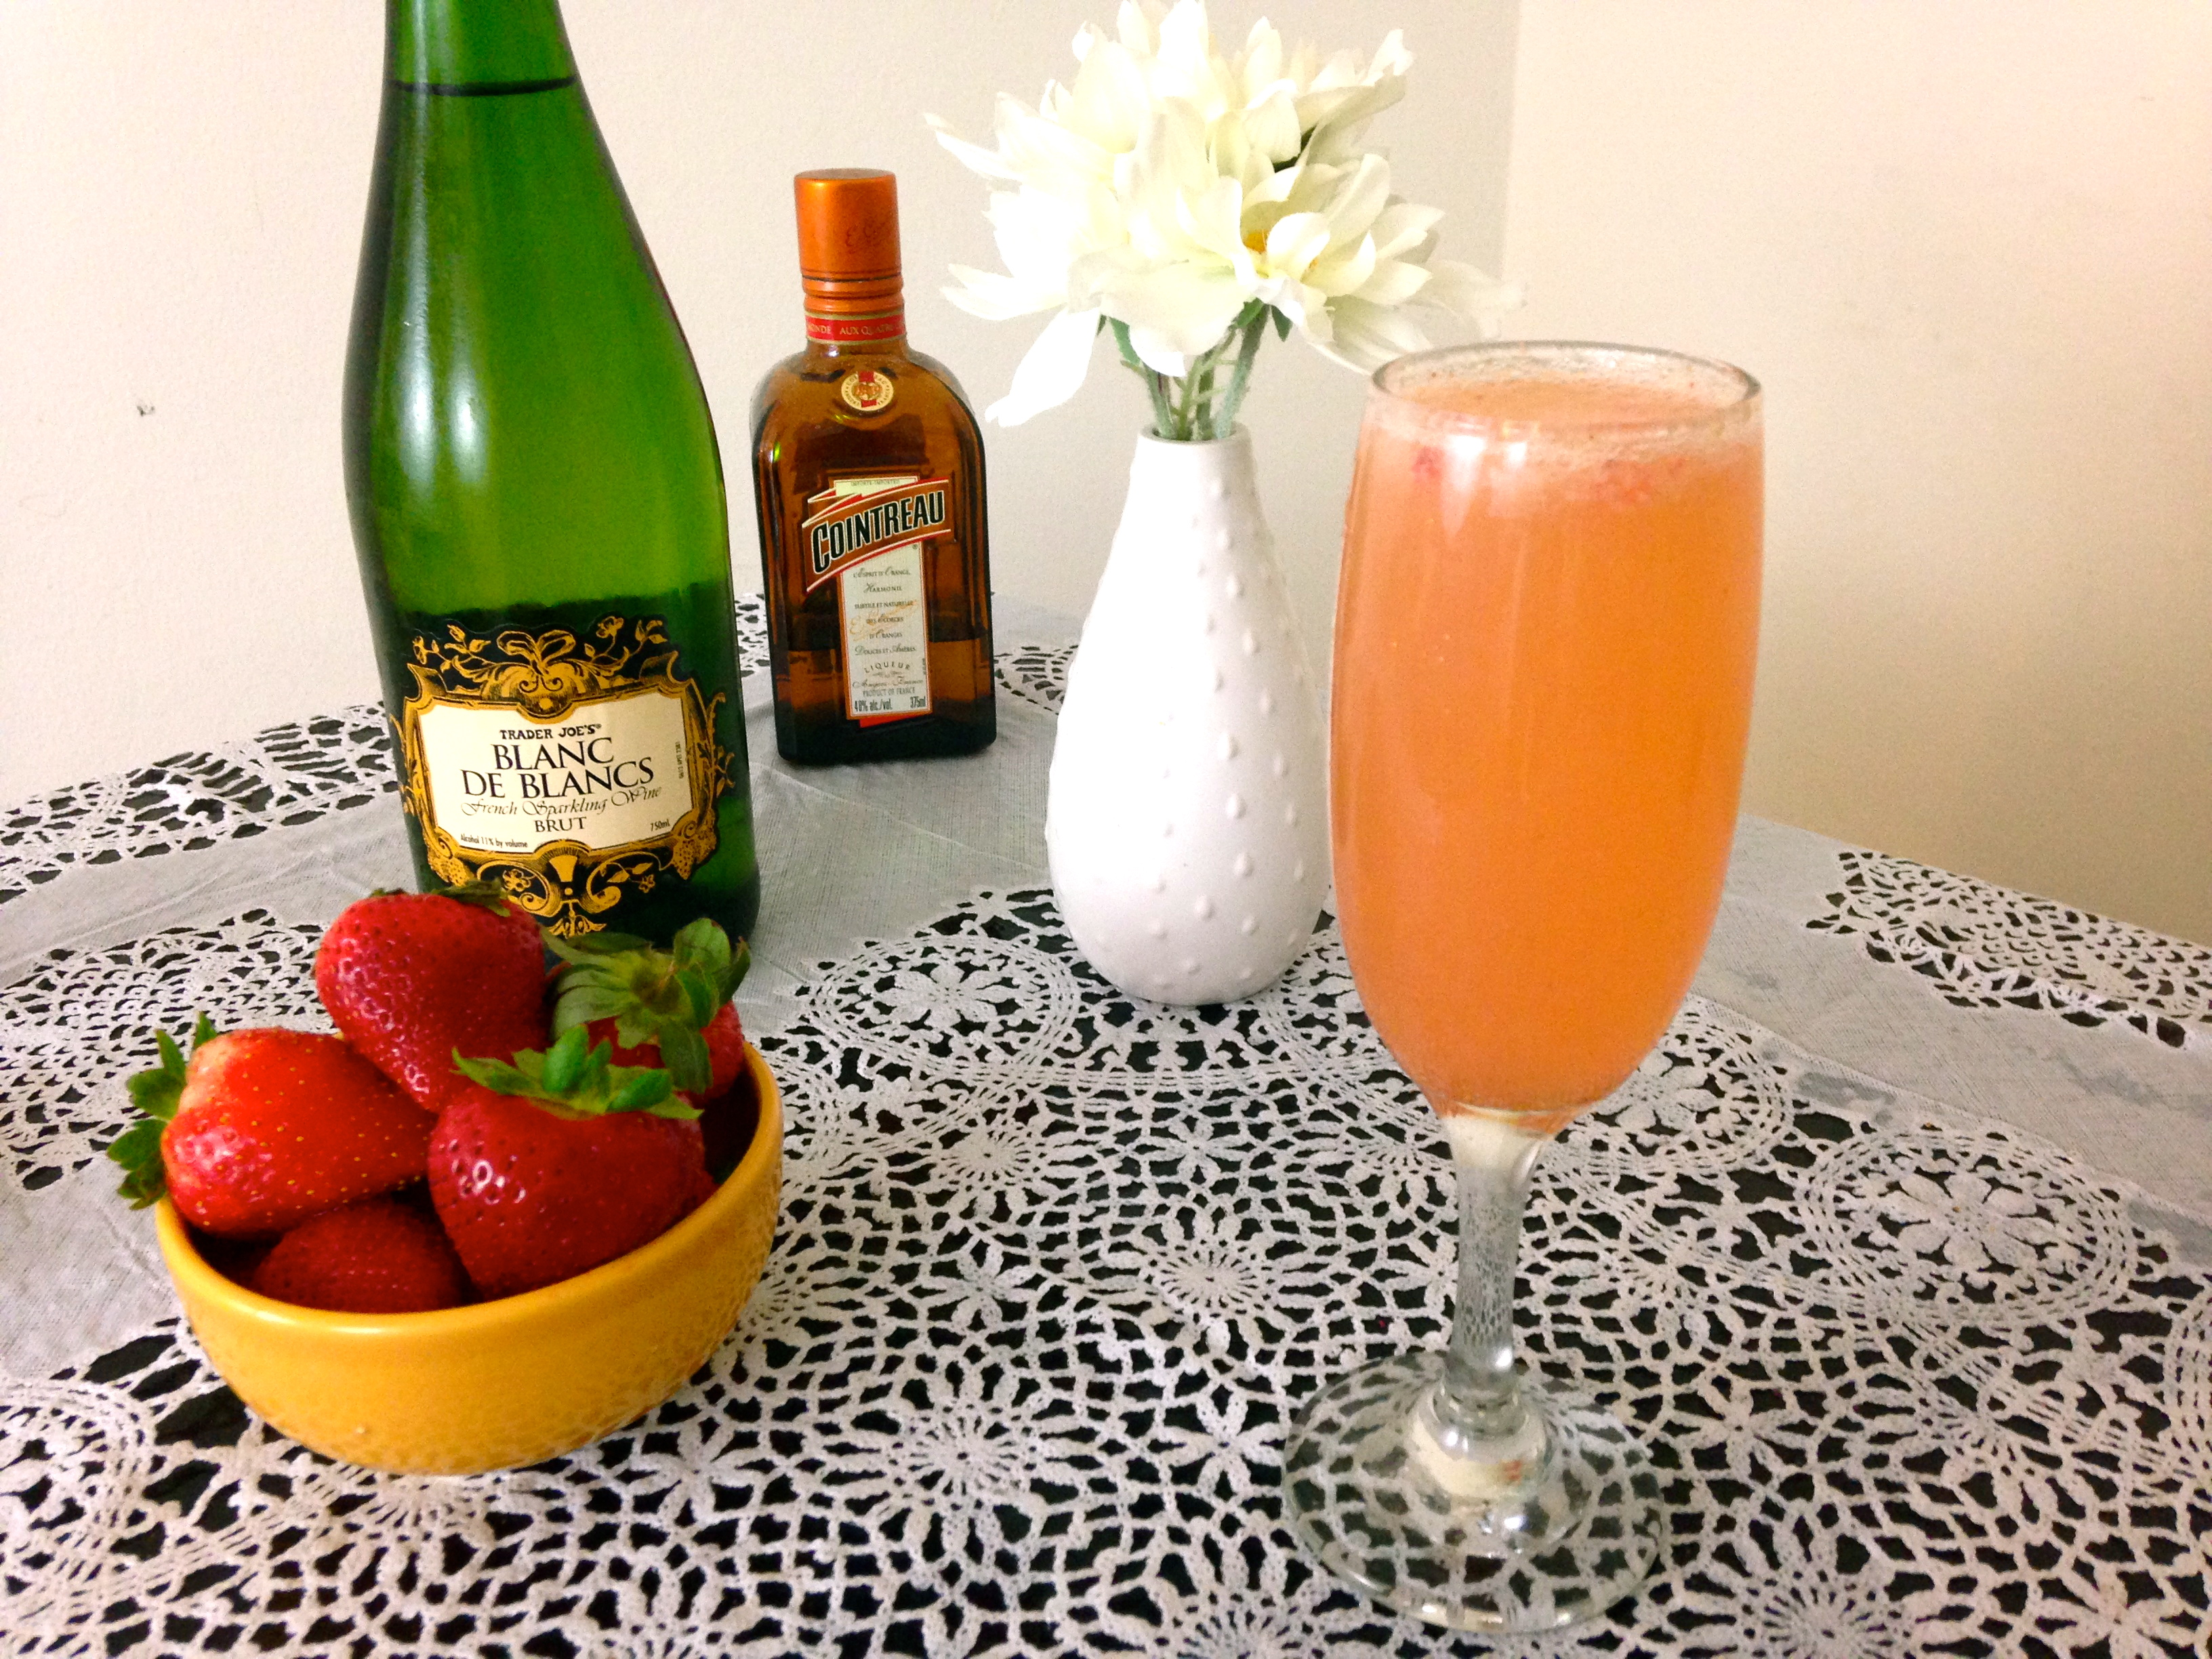 How to Make a Champagne Cocktail With Pureed Strawberries